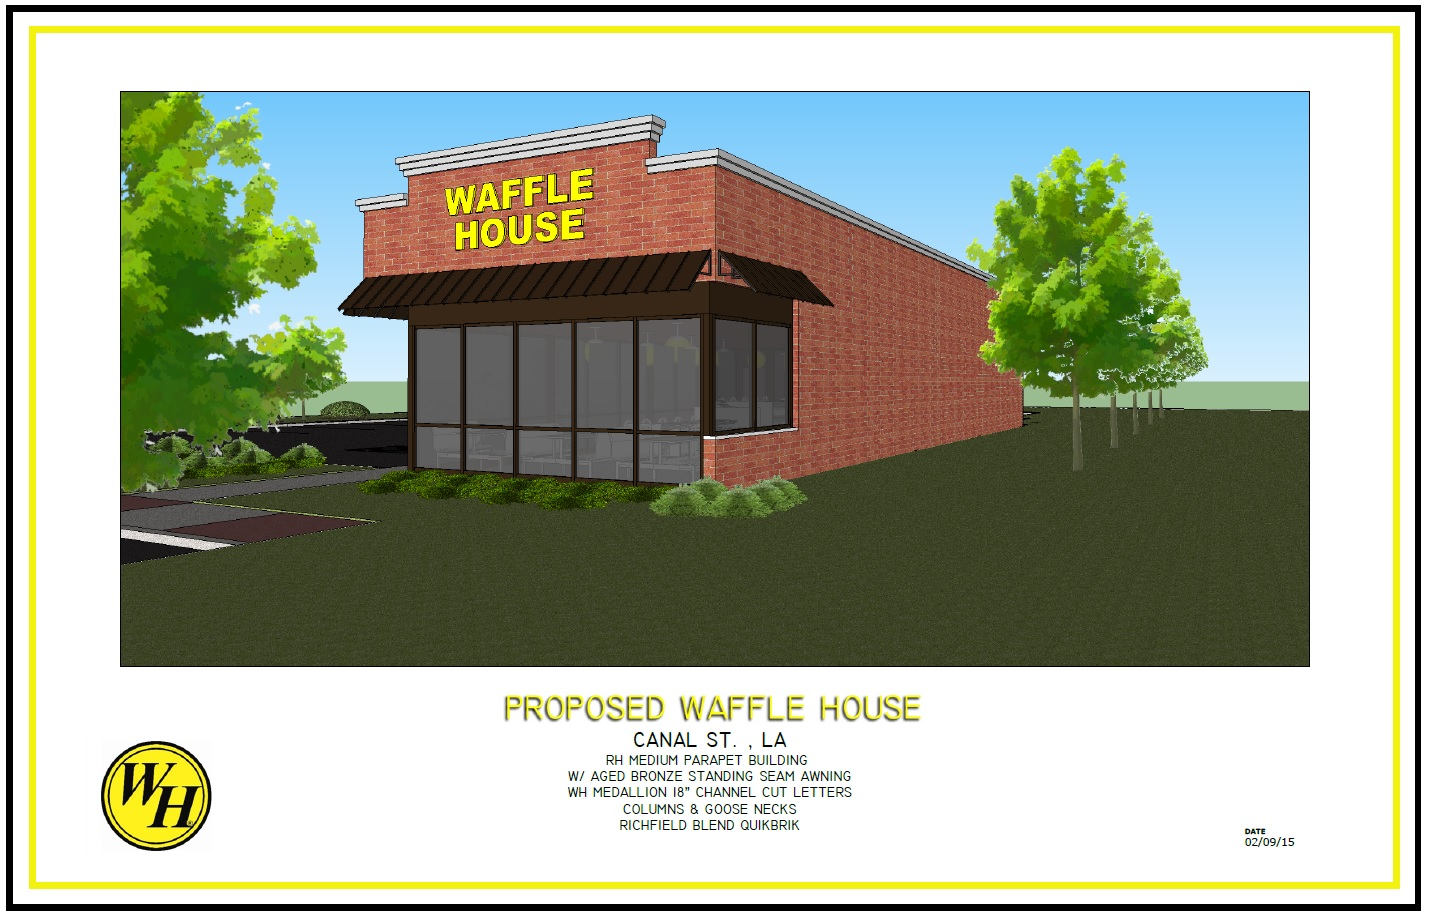 waffle2 Waffle House New Store Design on blimpie store, petsmart store, jimmy john's store, walmart store, caribou coffee store, weight watchers store, ihop store, little caesars store, burger house store, office depot store, tim hortons store, green house store, mc donald's store, ace hardware store, in-n-out burger store, macy's store, del taco store, panera bread store, applebees store,